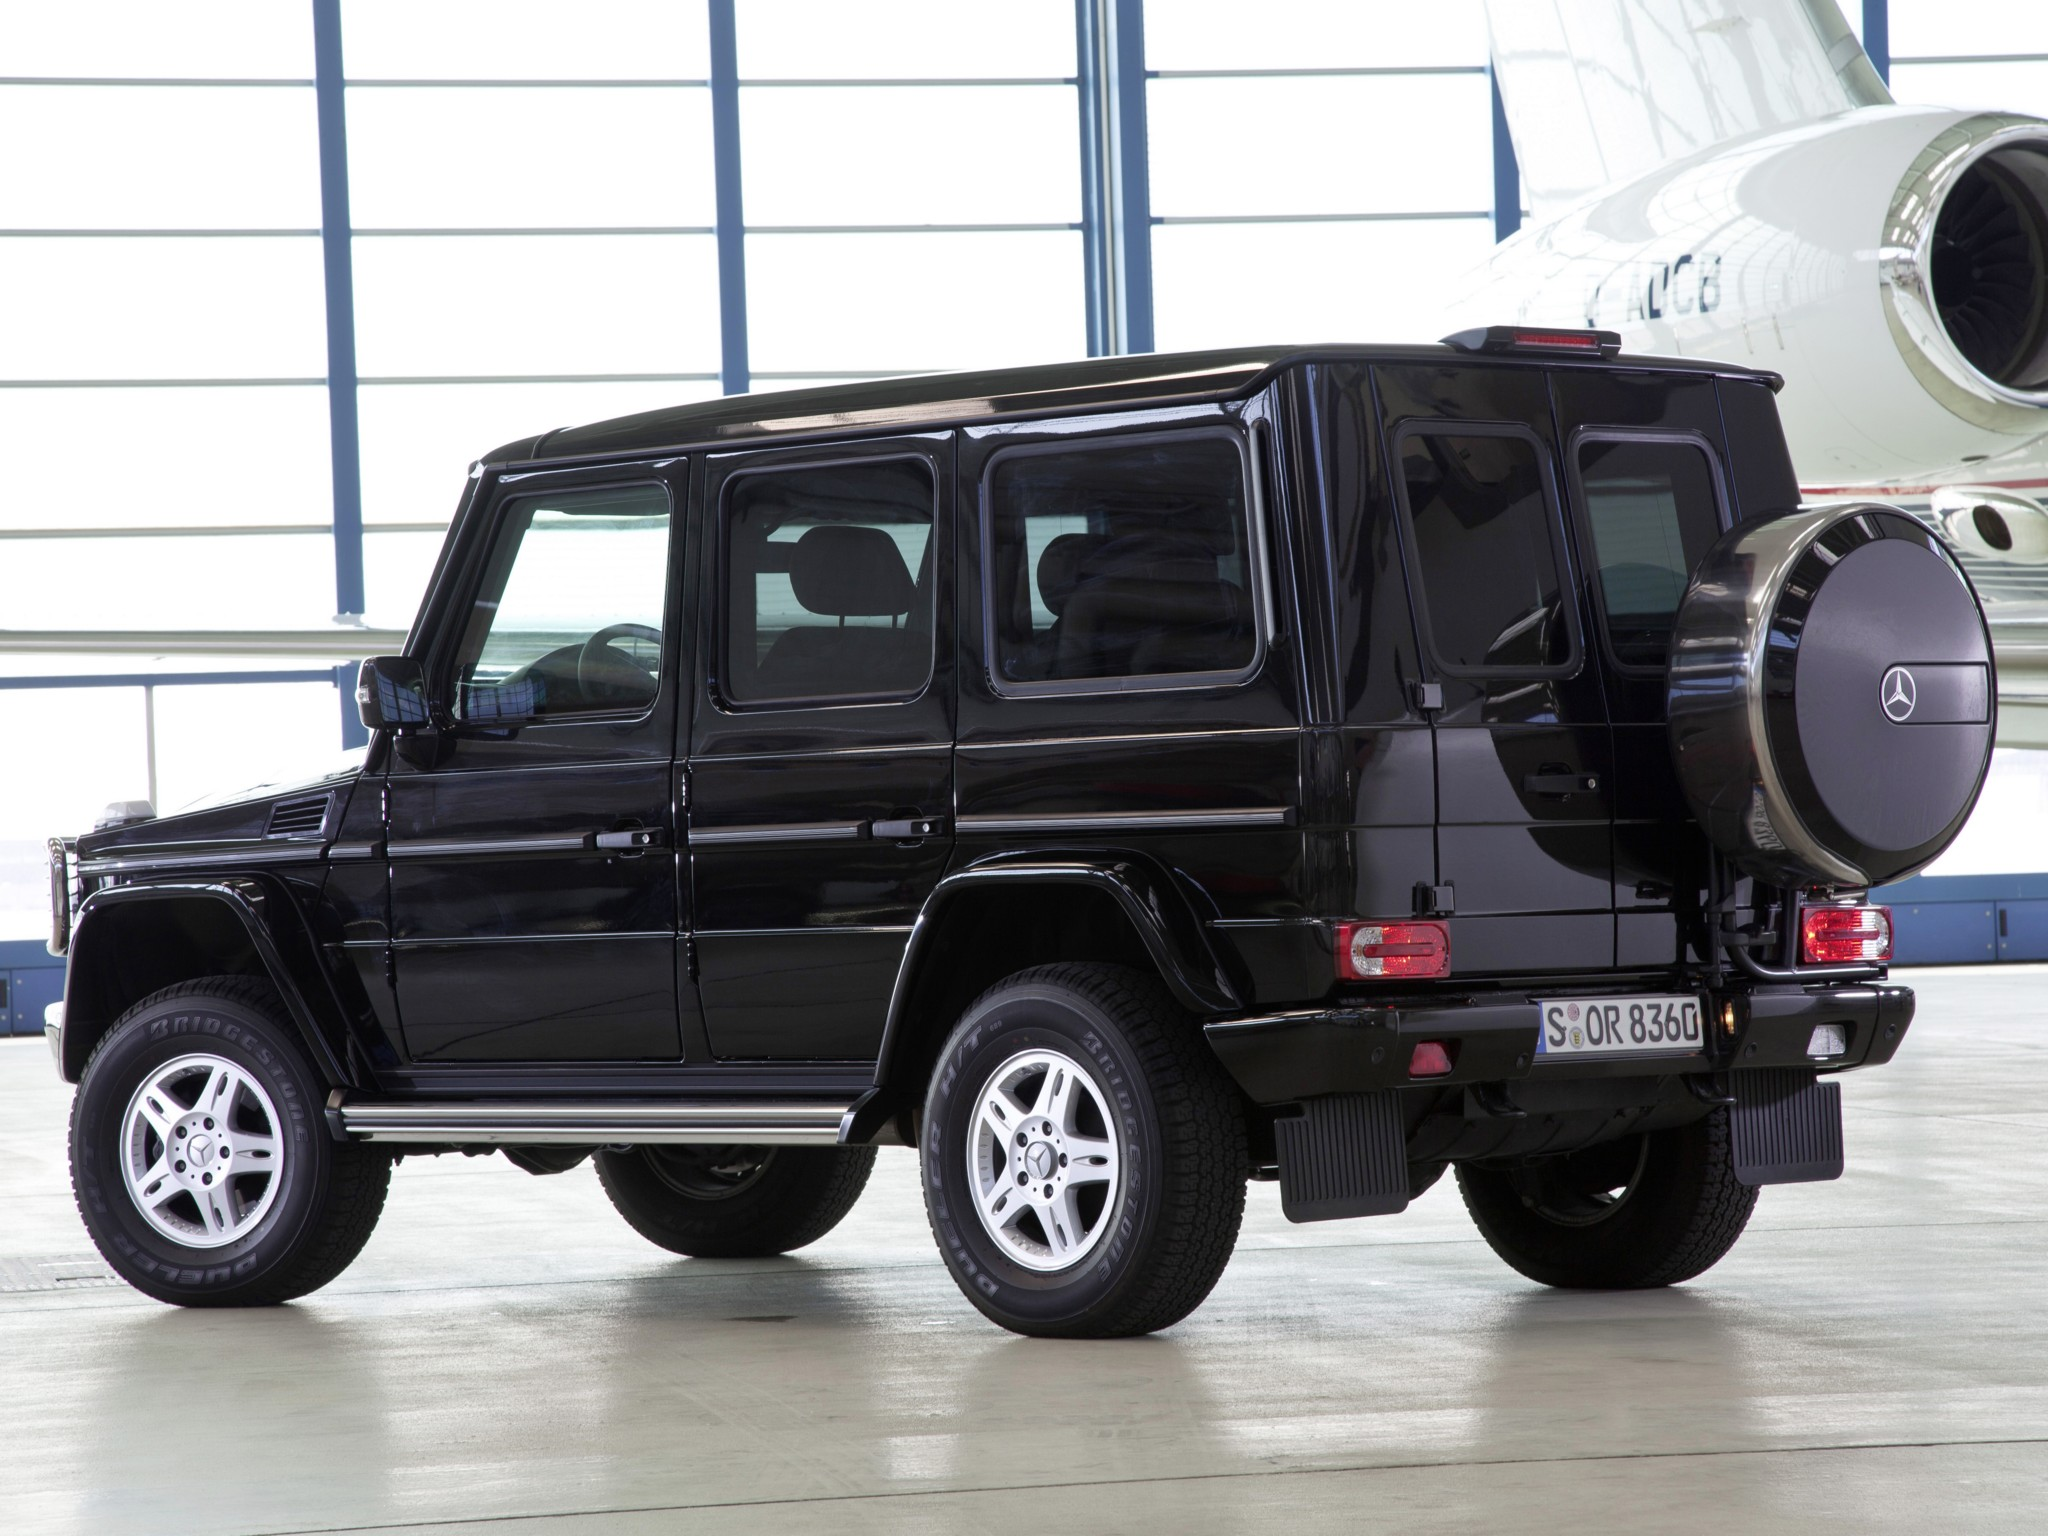 2009 armored mercedes benz g 500 guard w463 suv 4x4 g for Mercedes benz e guard price